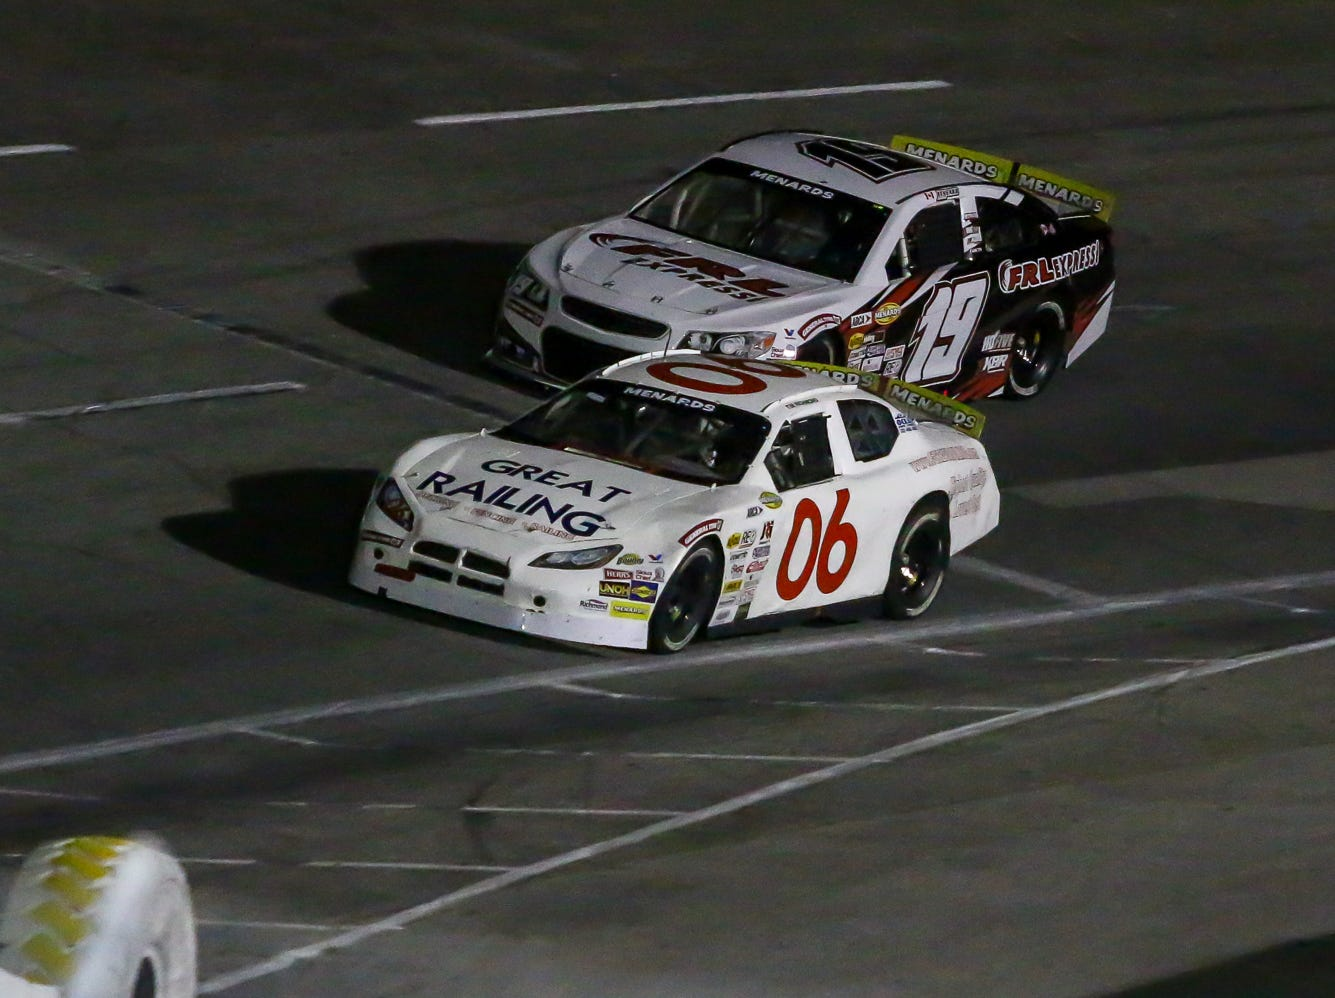 Raphael Lessard (19) and Tim Richmond (06) make their way around the track during the ARCA Pensacola 200 race presented by Inspectra Thermal Solutions on Saturday, March 9, 2019, at Five Flags Speedway. Michael Self, of Salt Lake City, won the race.